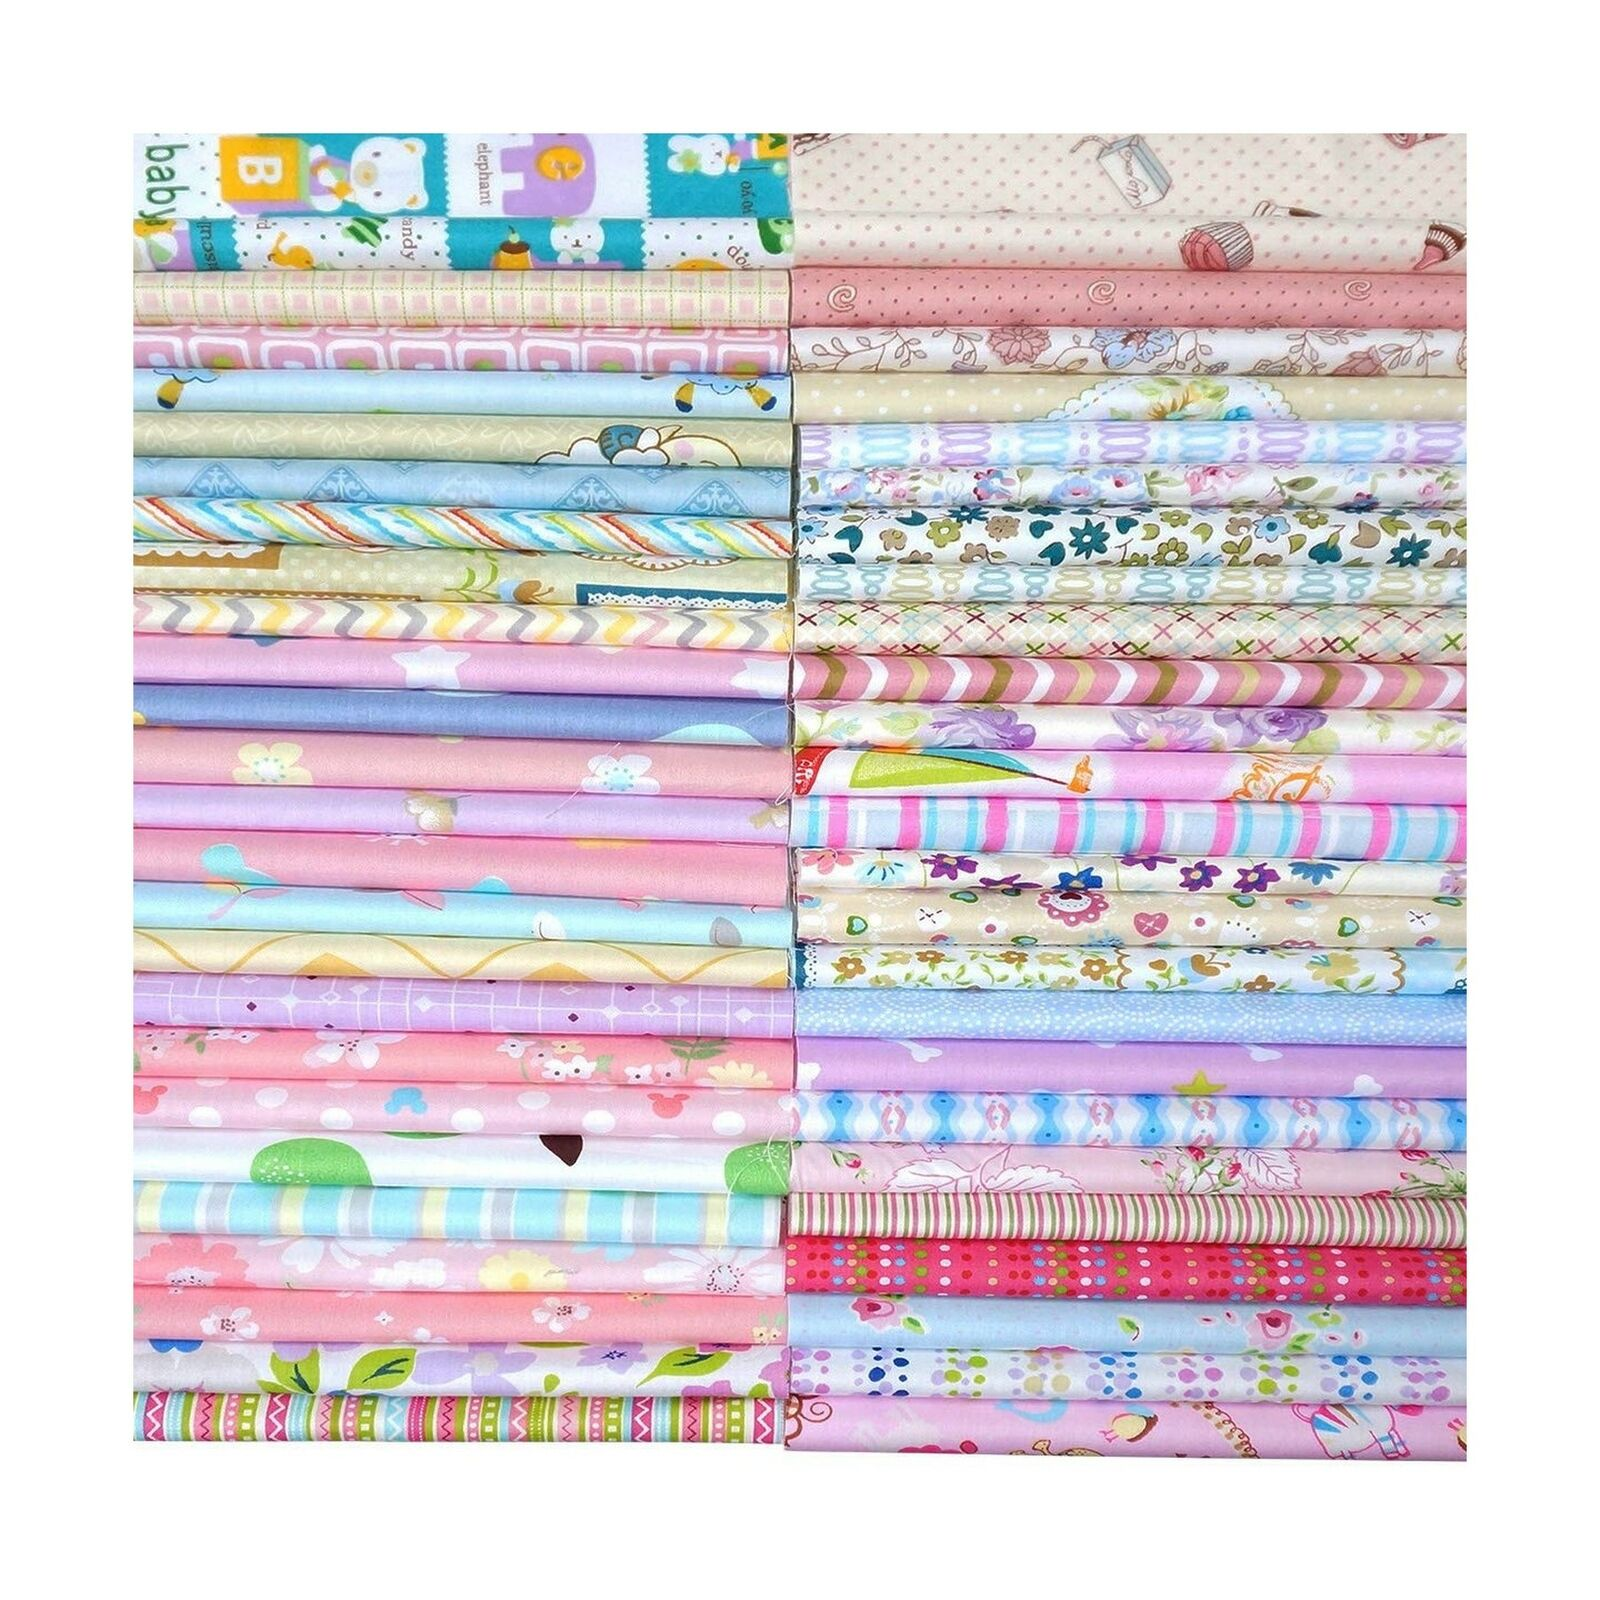 Misscrafts Cotton Fabric Squares Precut Quilting Charm Pack